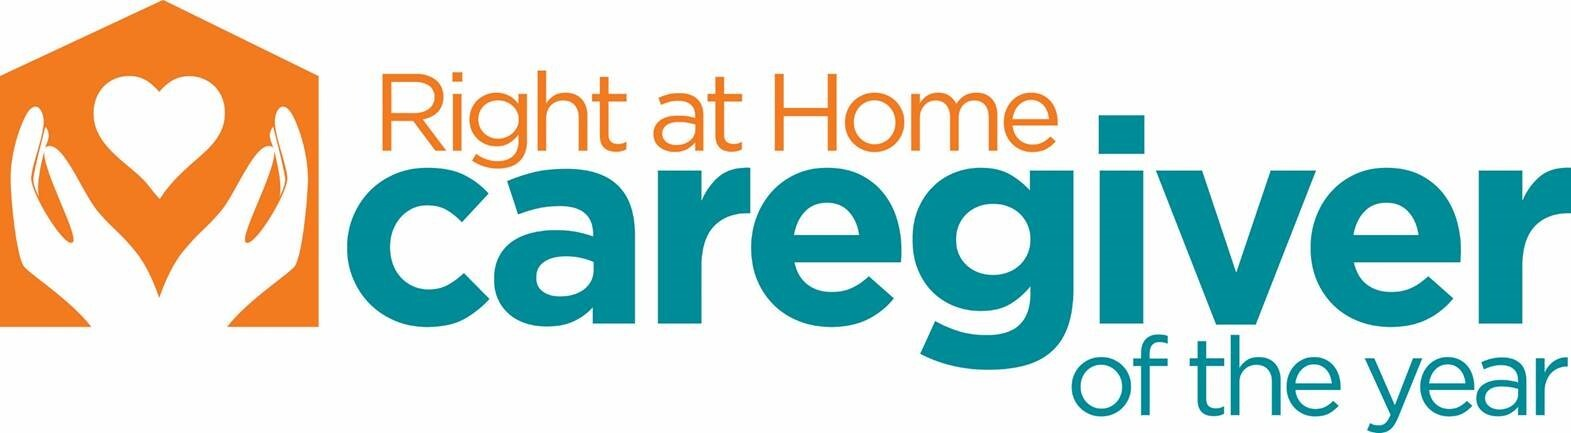 Right at Home caregiver of the year